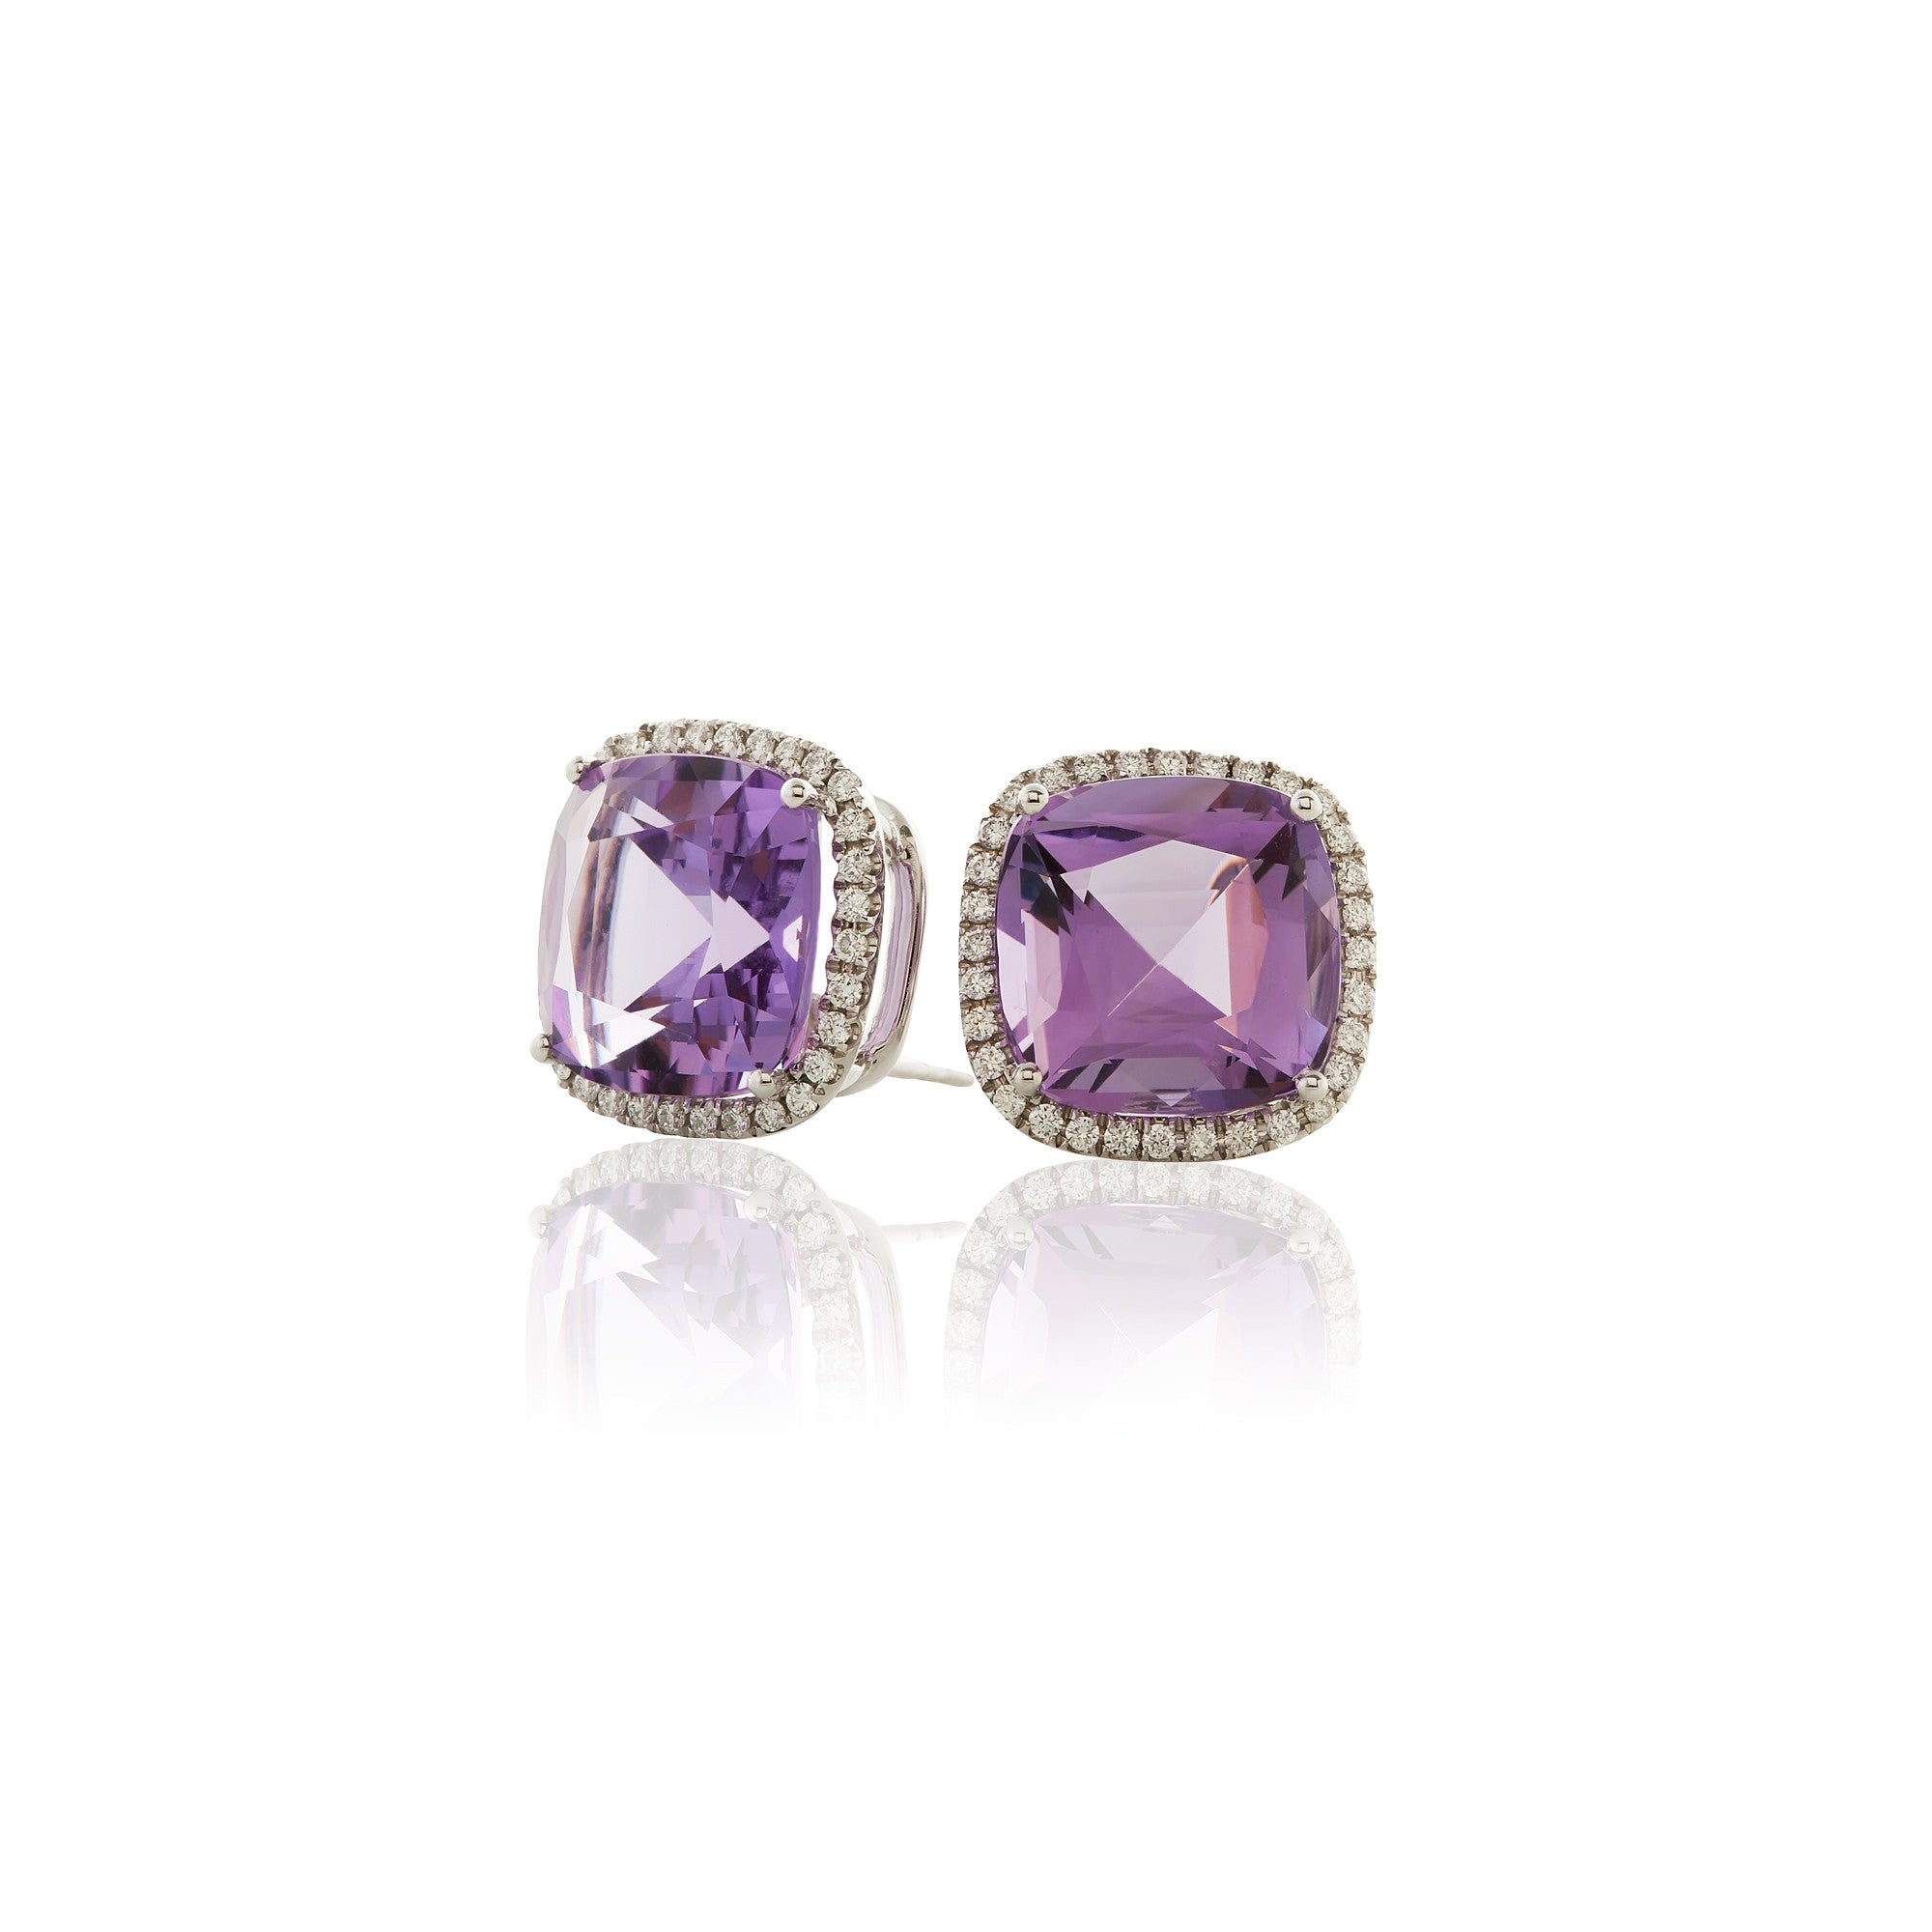 Gossip Amethyst and Diamond Earrings